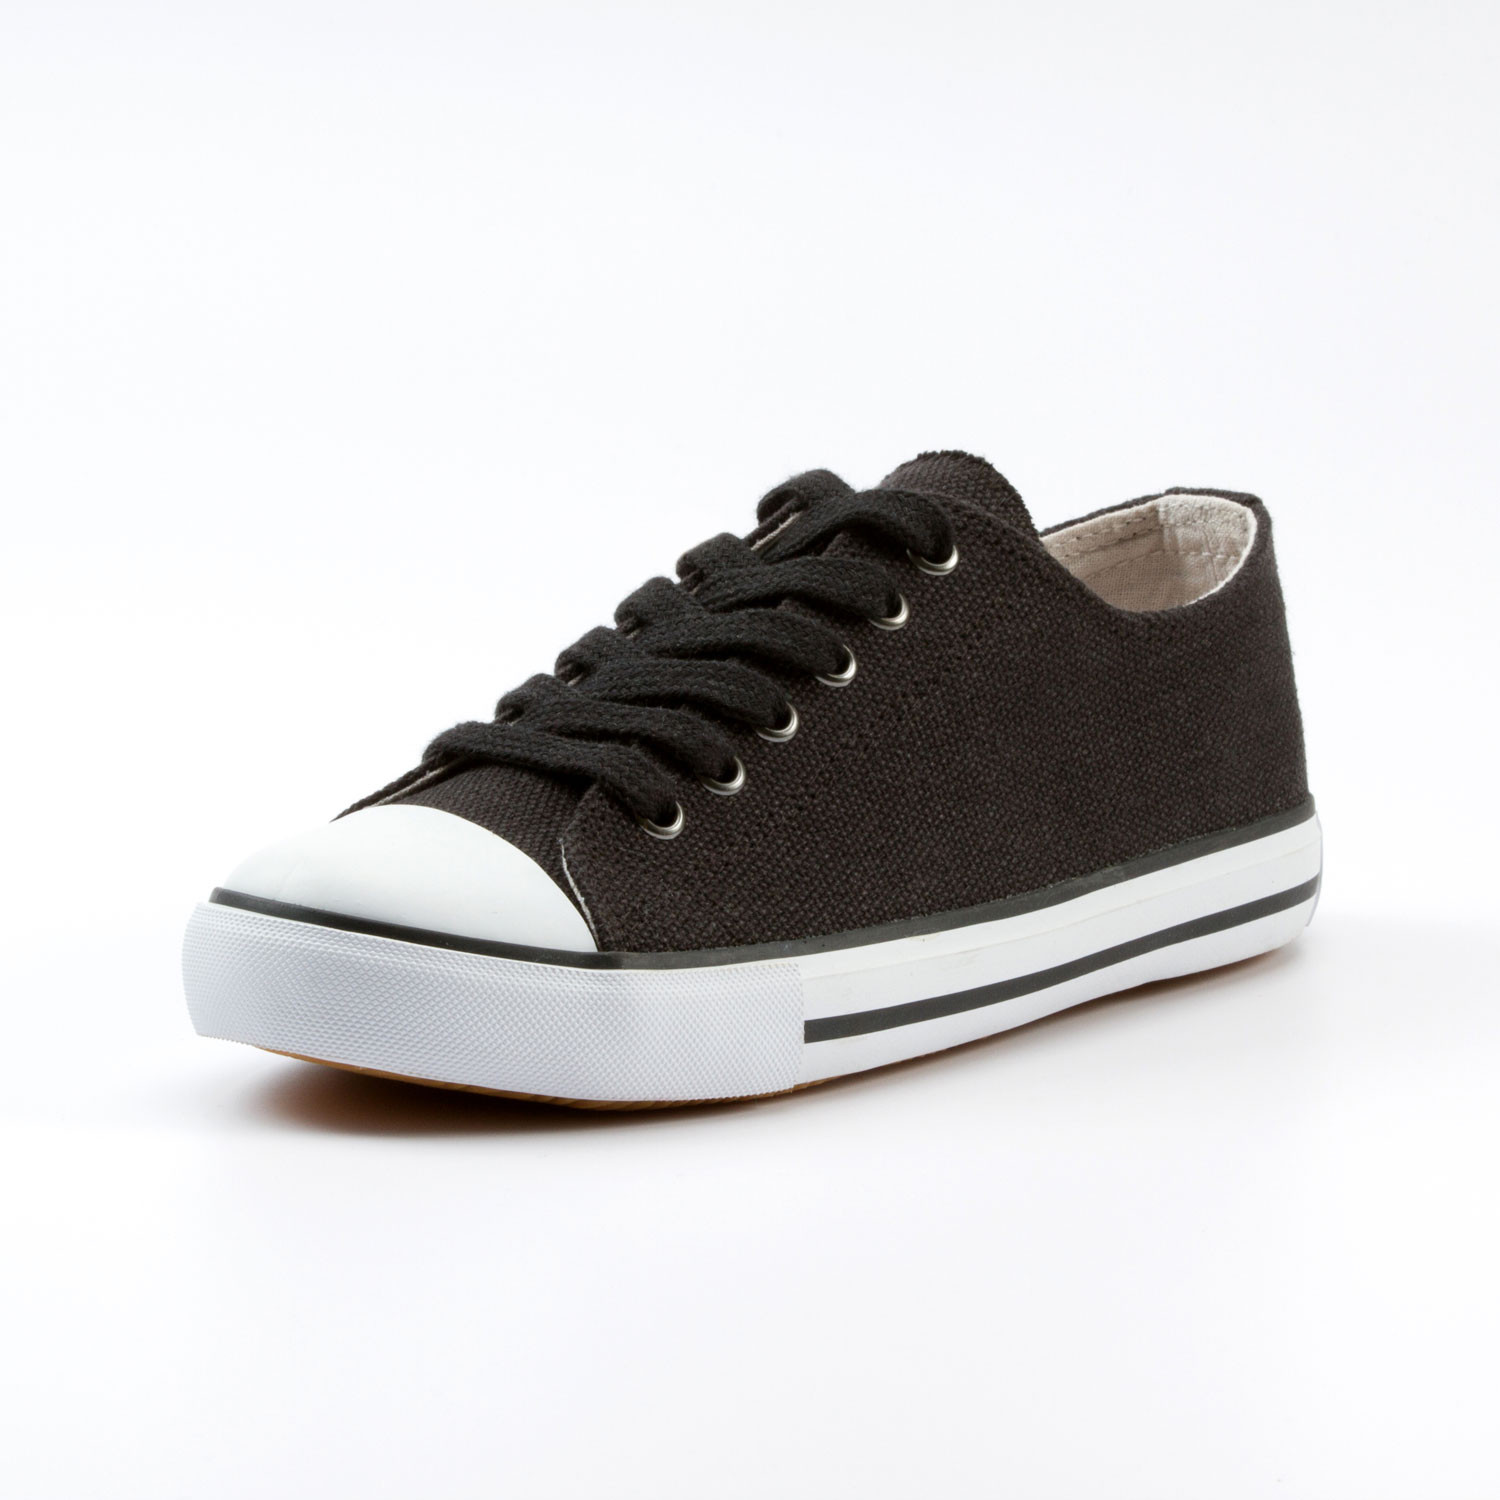 "Hennep sneakers ""Chris"", zwart"